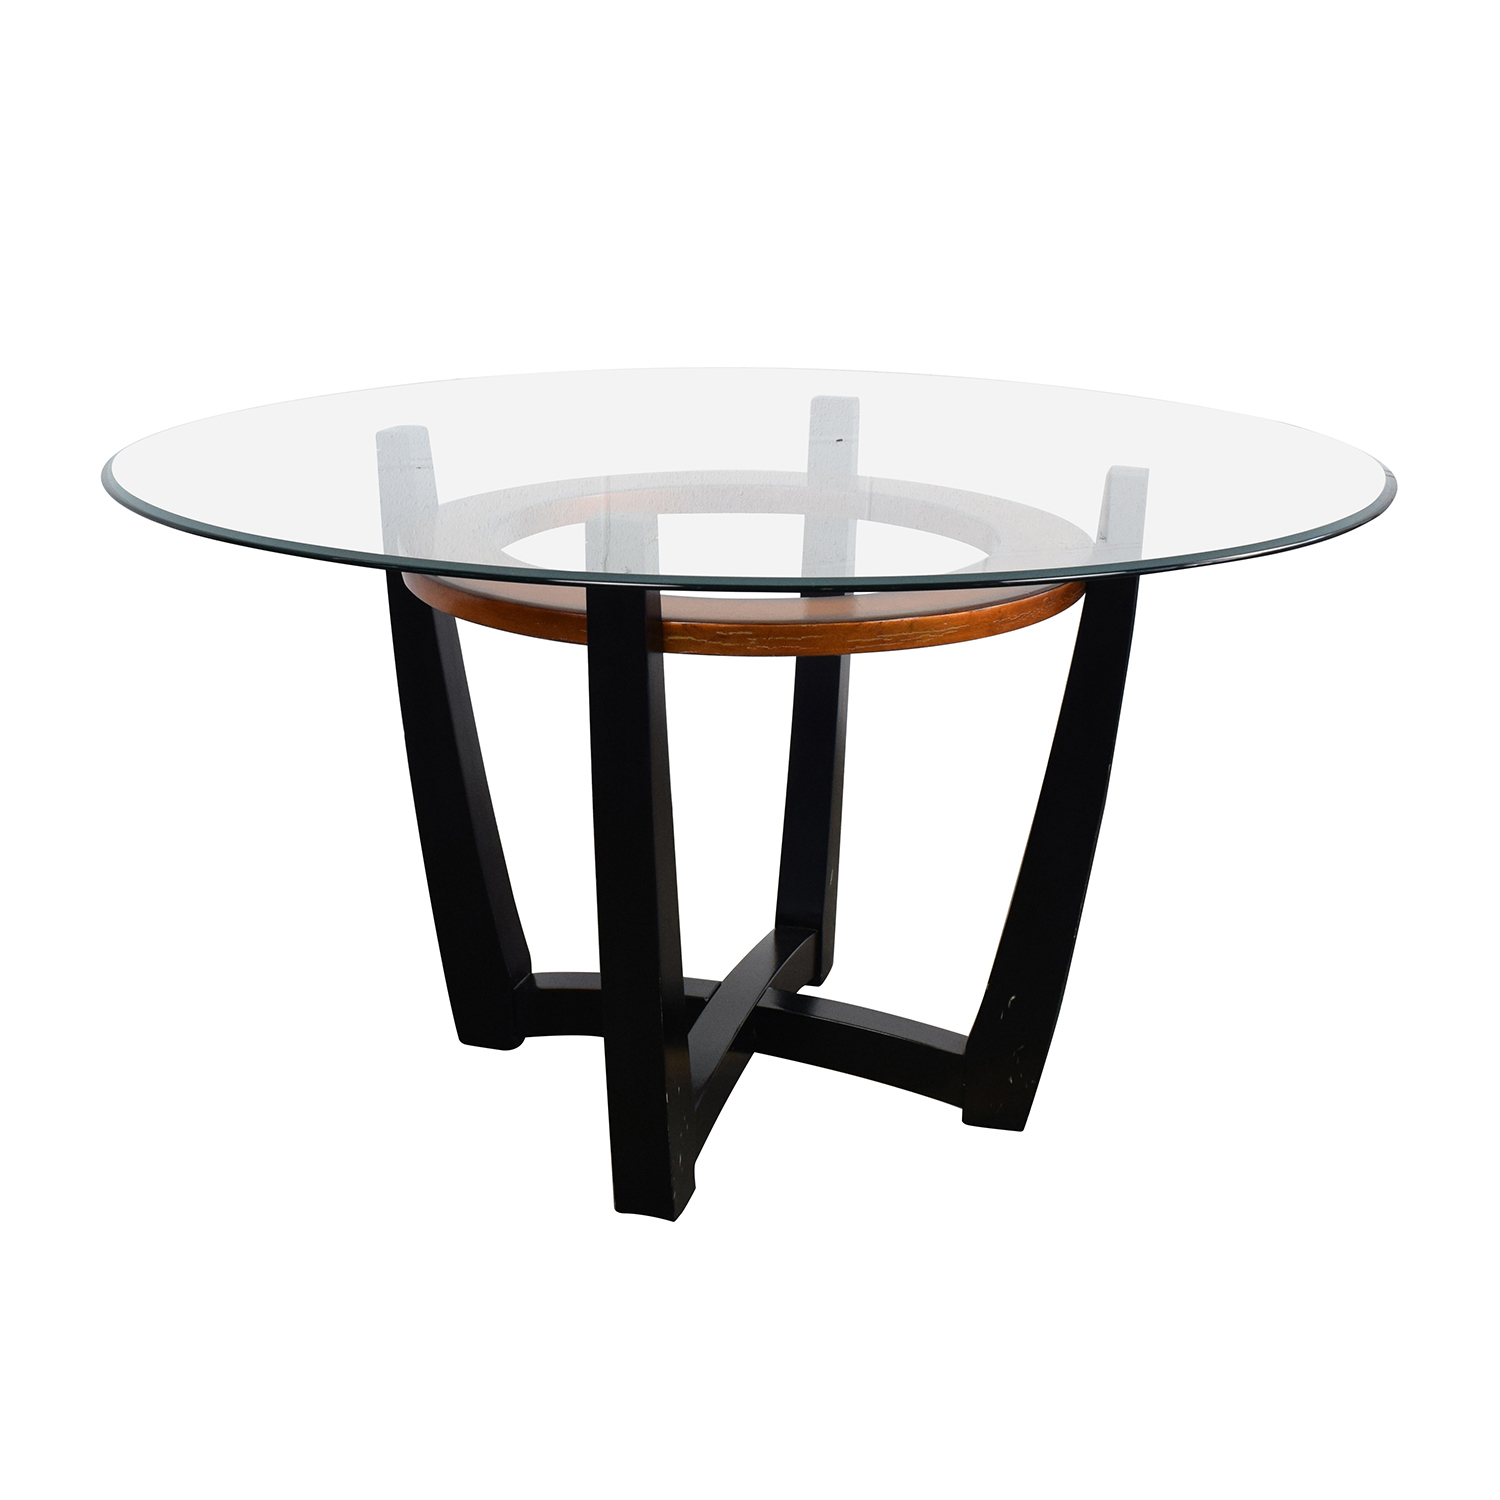 88 off macy 39 s macy 39 s elation round glass dining table for Round glass dining table